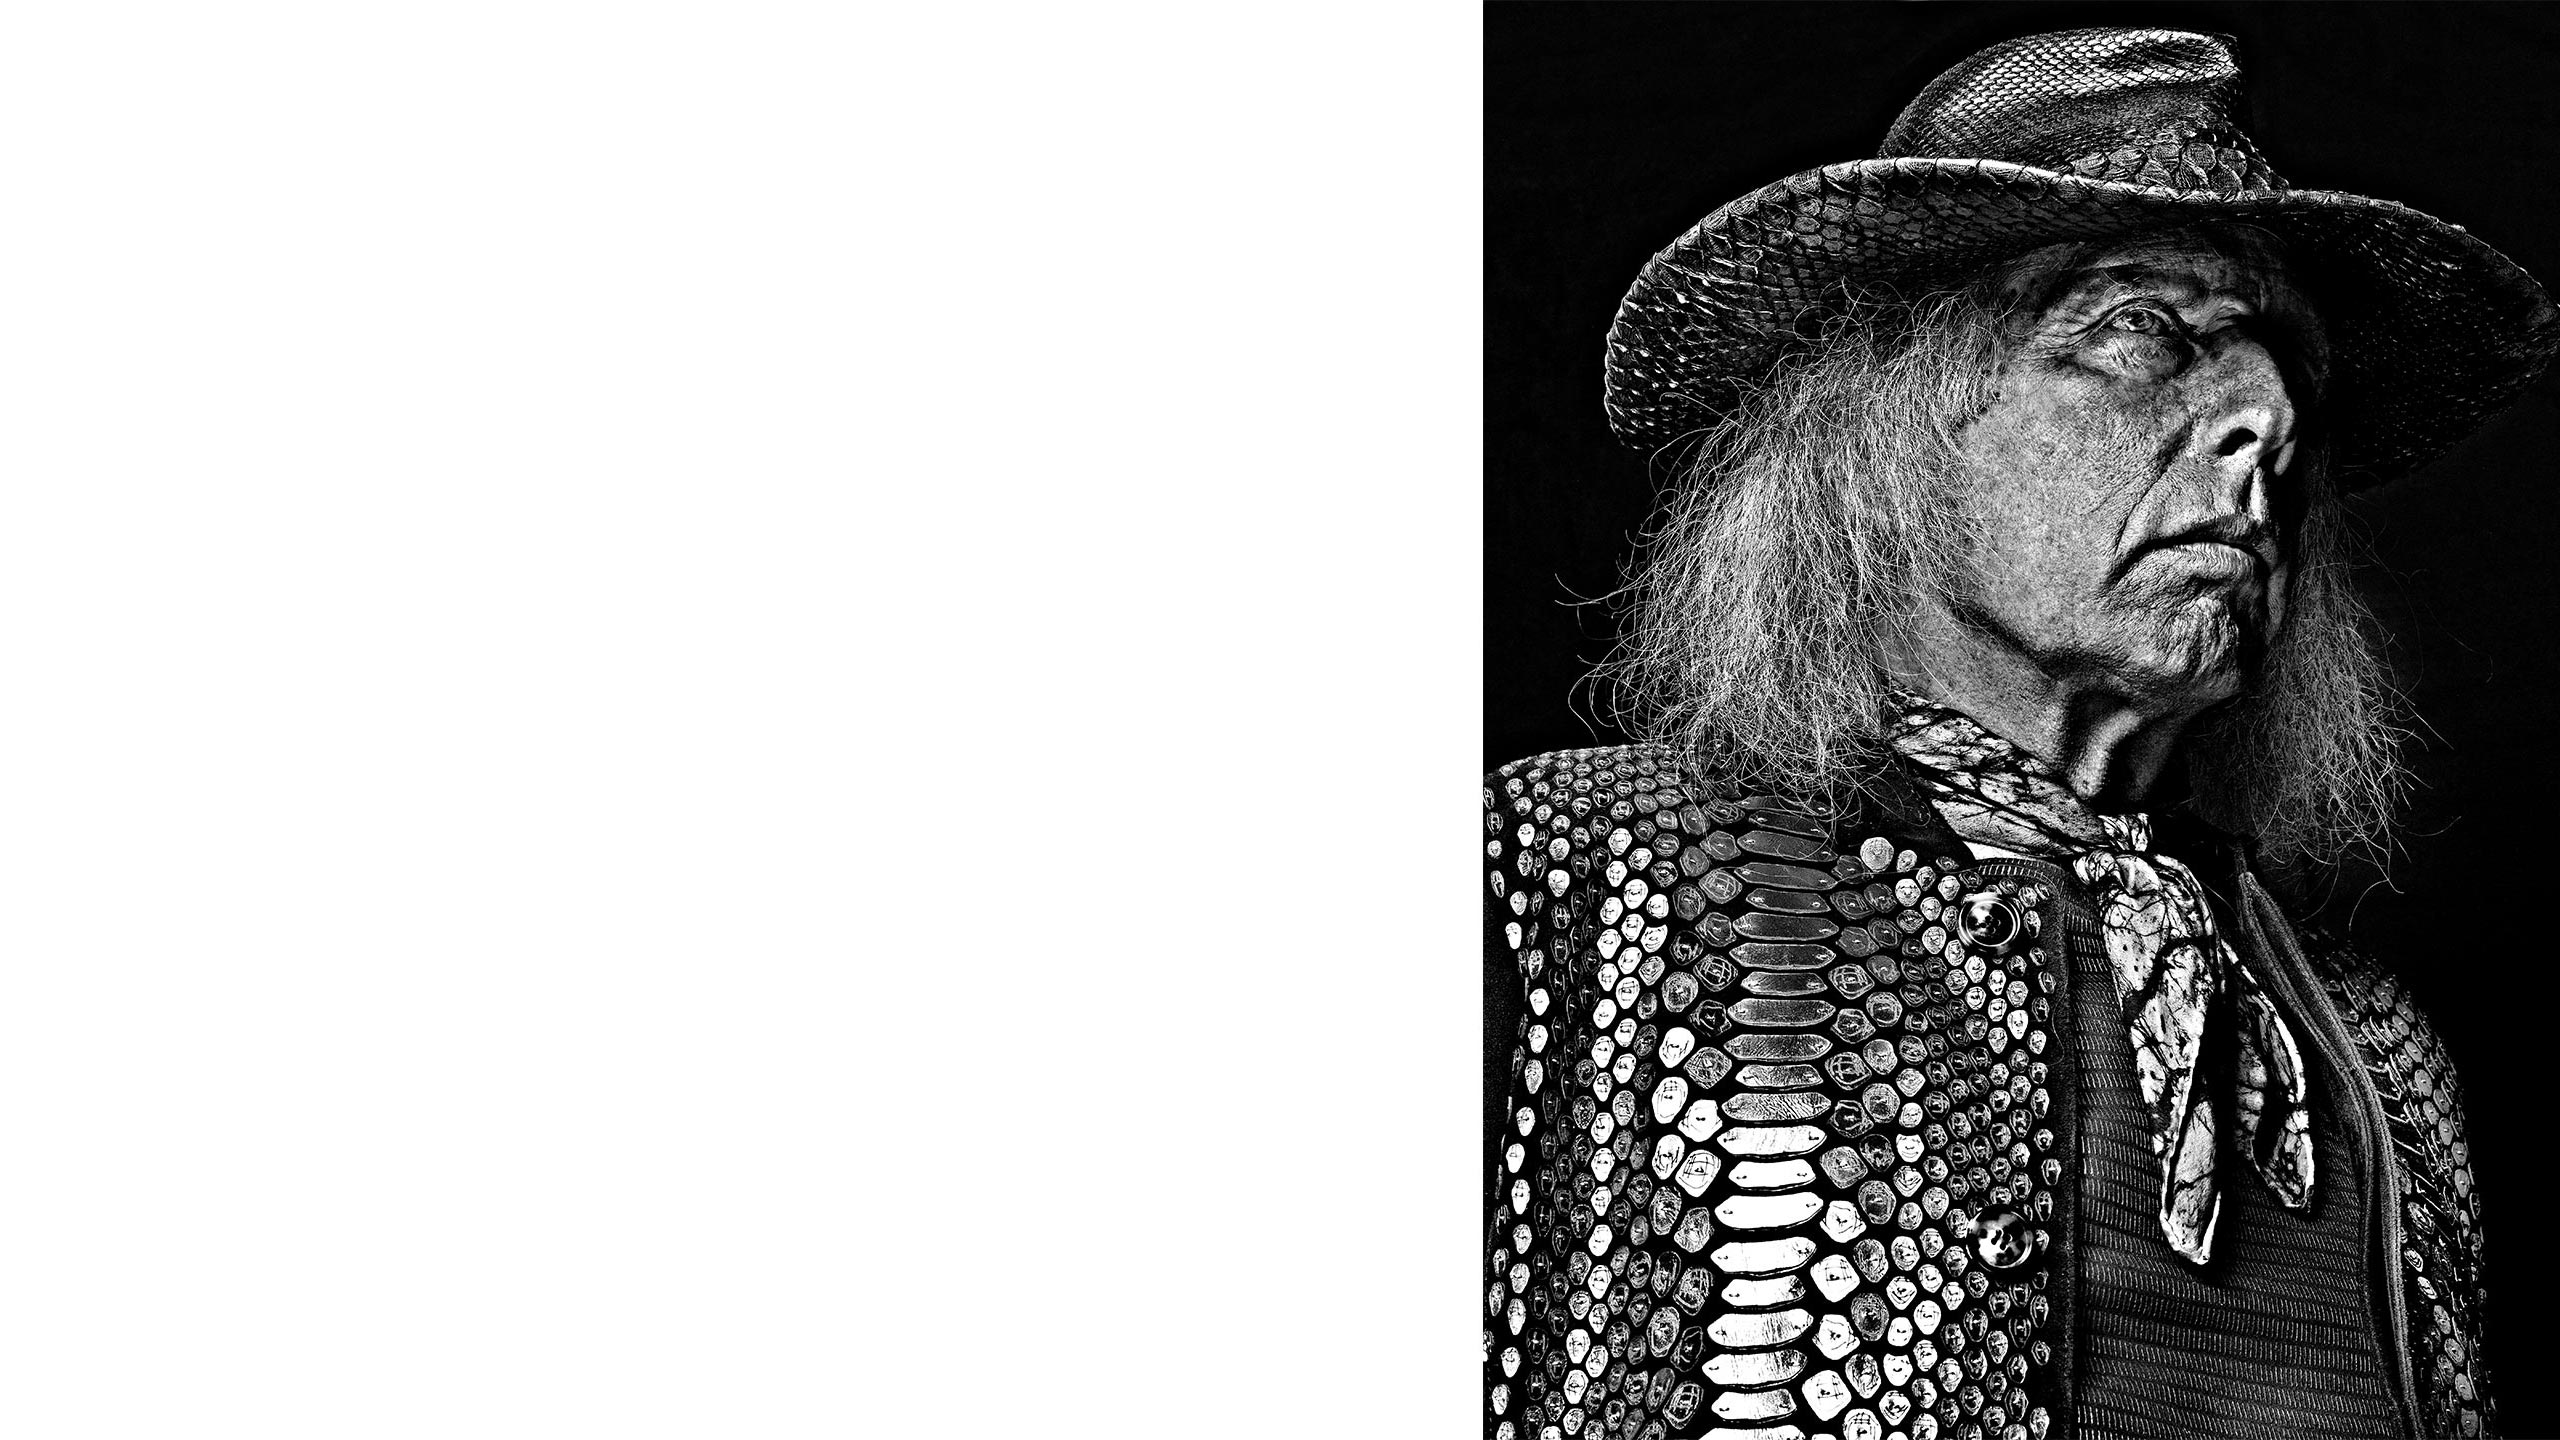 JAMES_GOLDSTEIN_BY_PATRIZIO_DI_RENZO_4